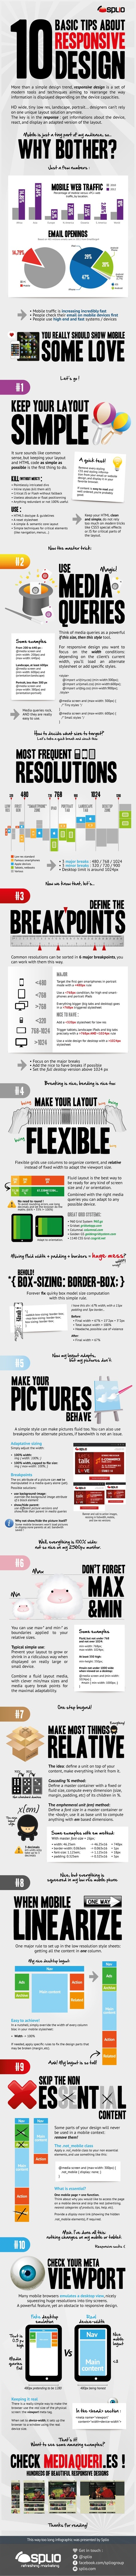 10 Tips To Build A Responsive Website [Infographic] | Web mobile - UI Design - Html5-CSS3 | Scoop.it